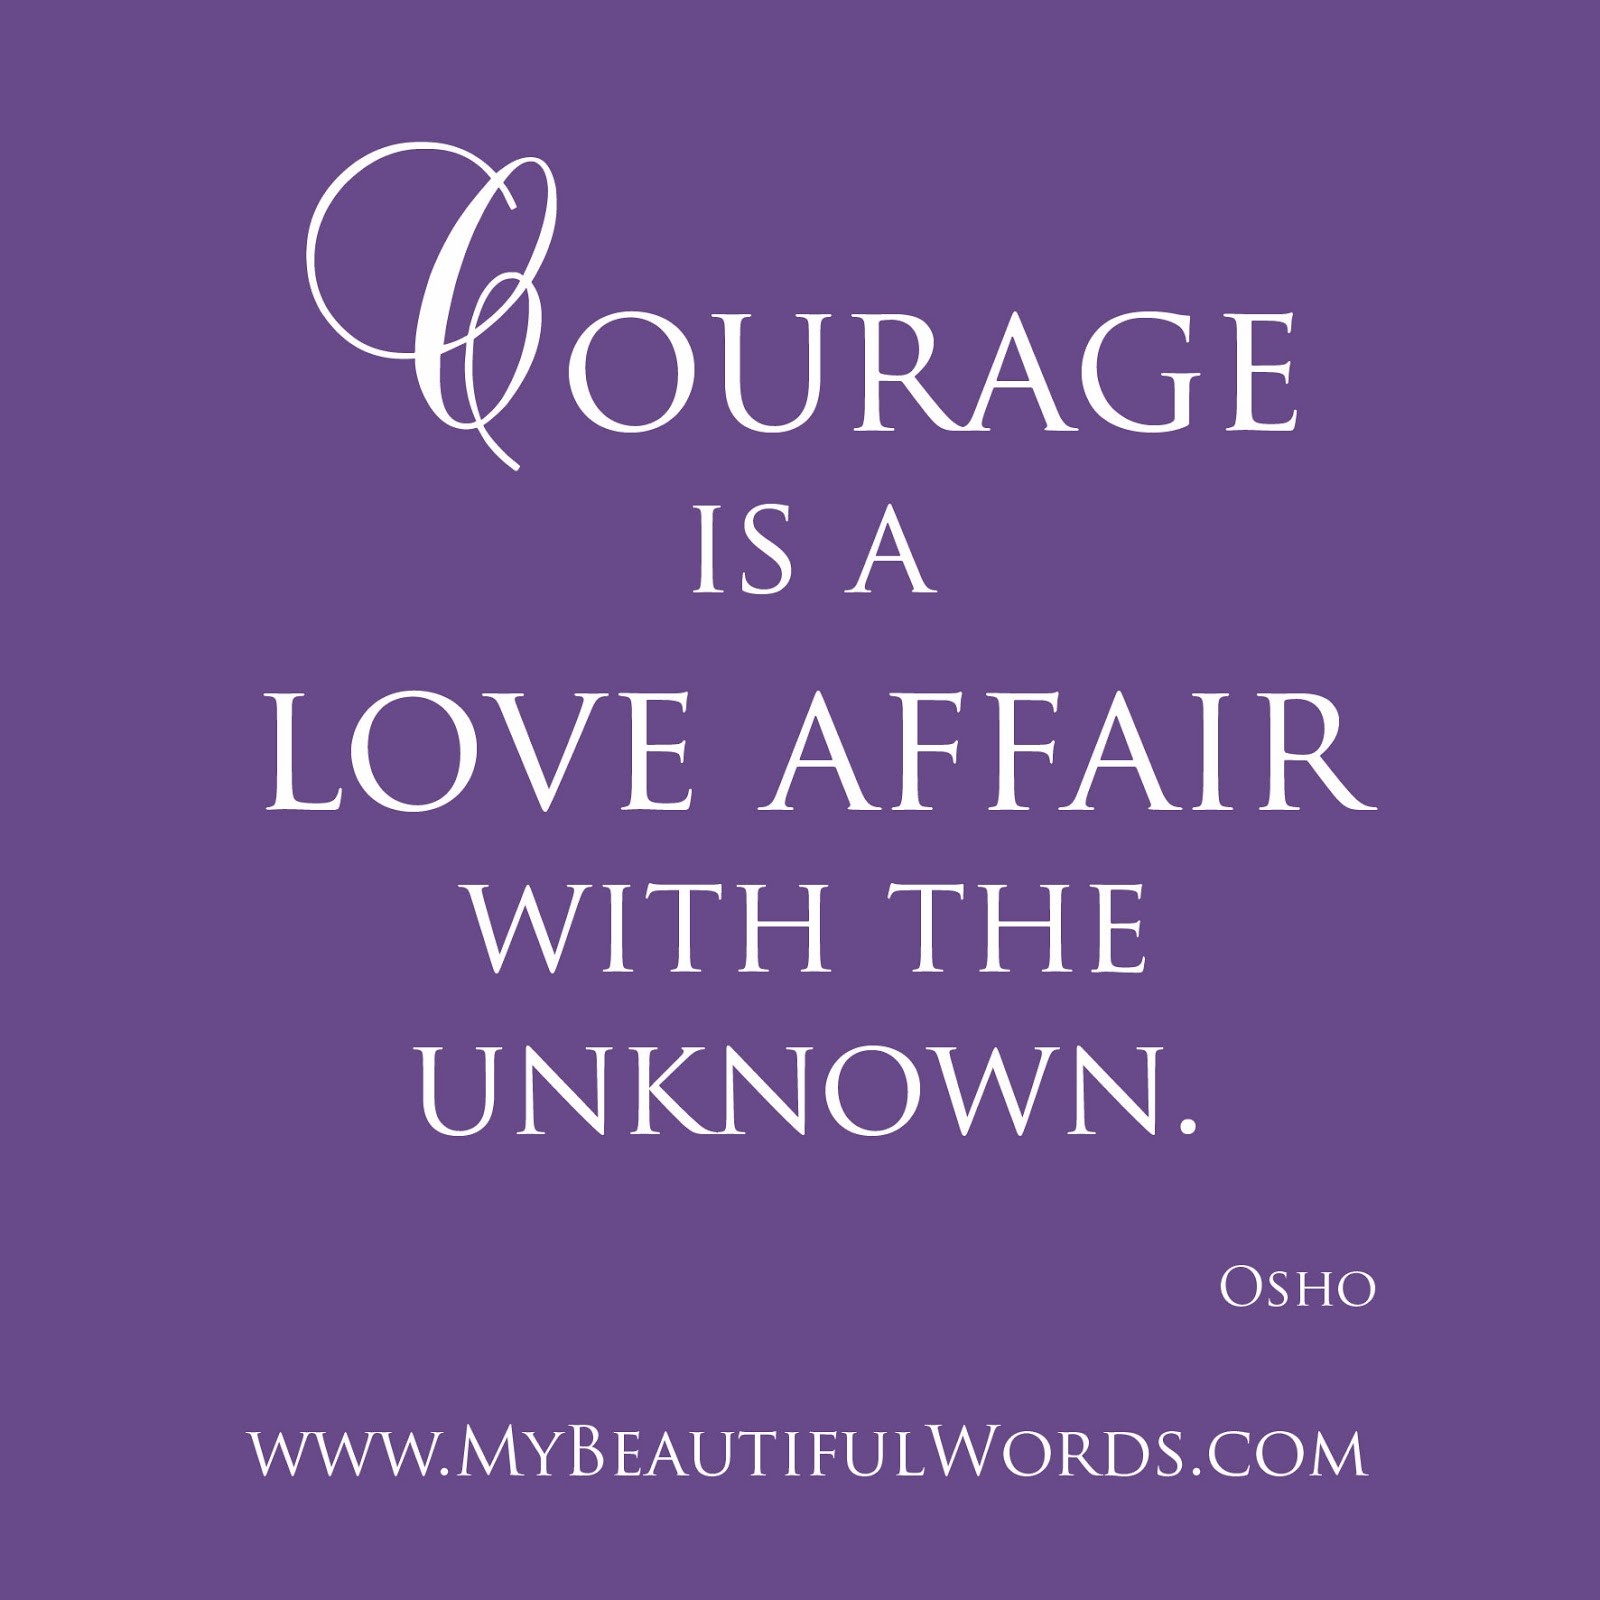 Courage To Love: My Beautiful Words.: Courage Is A Love Affair